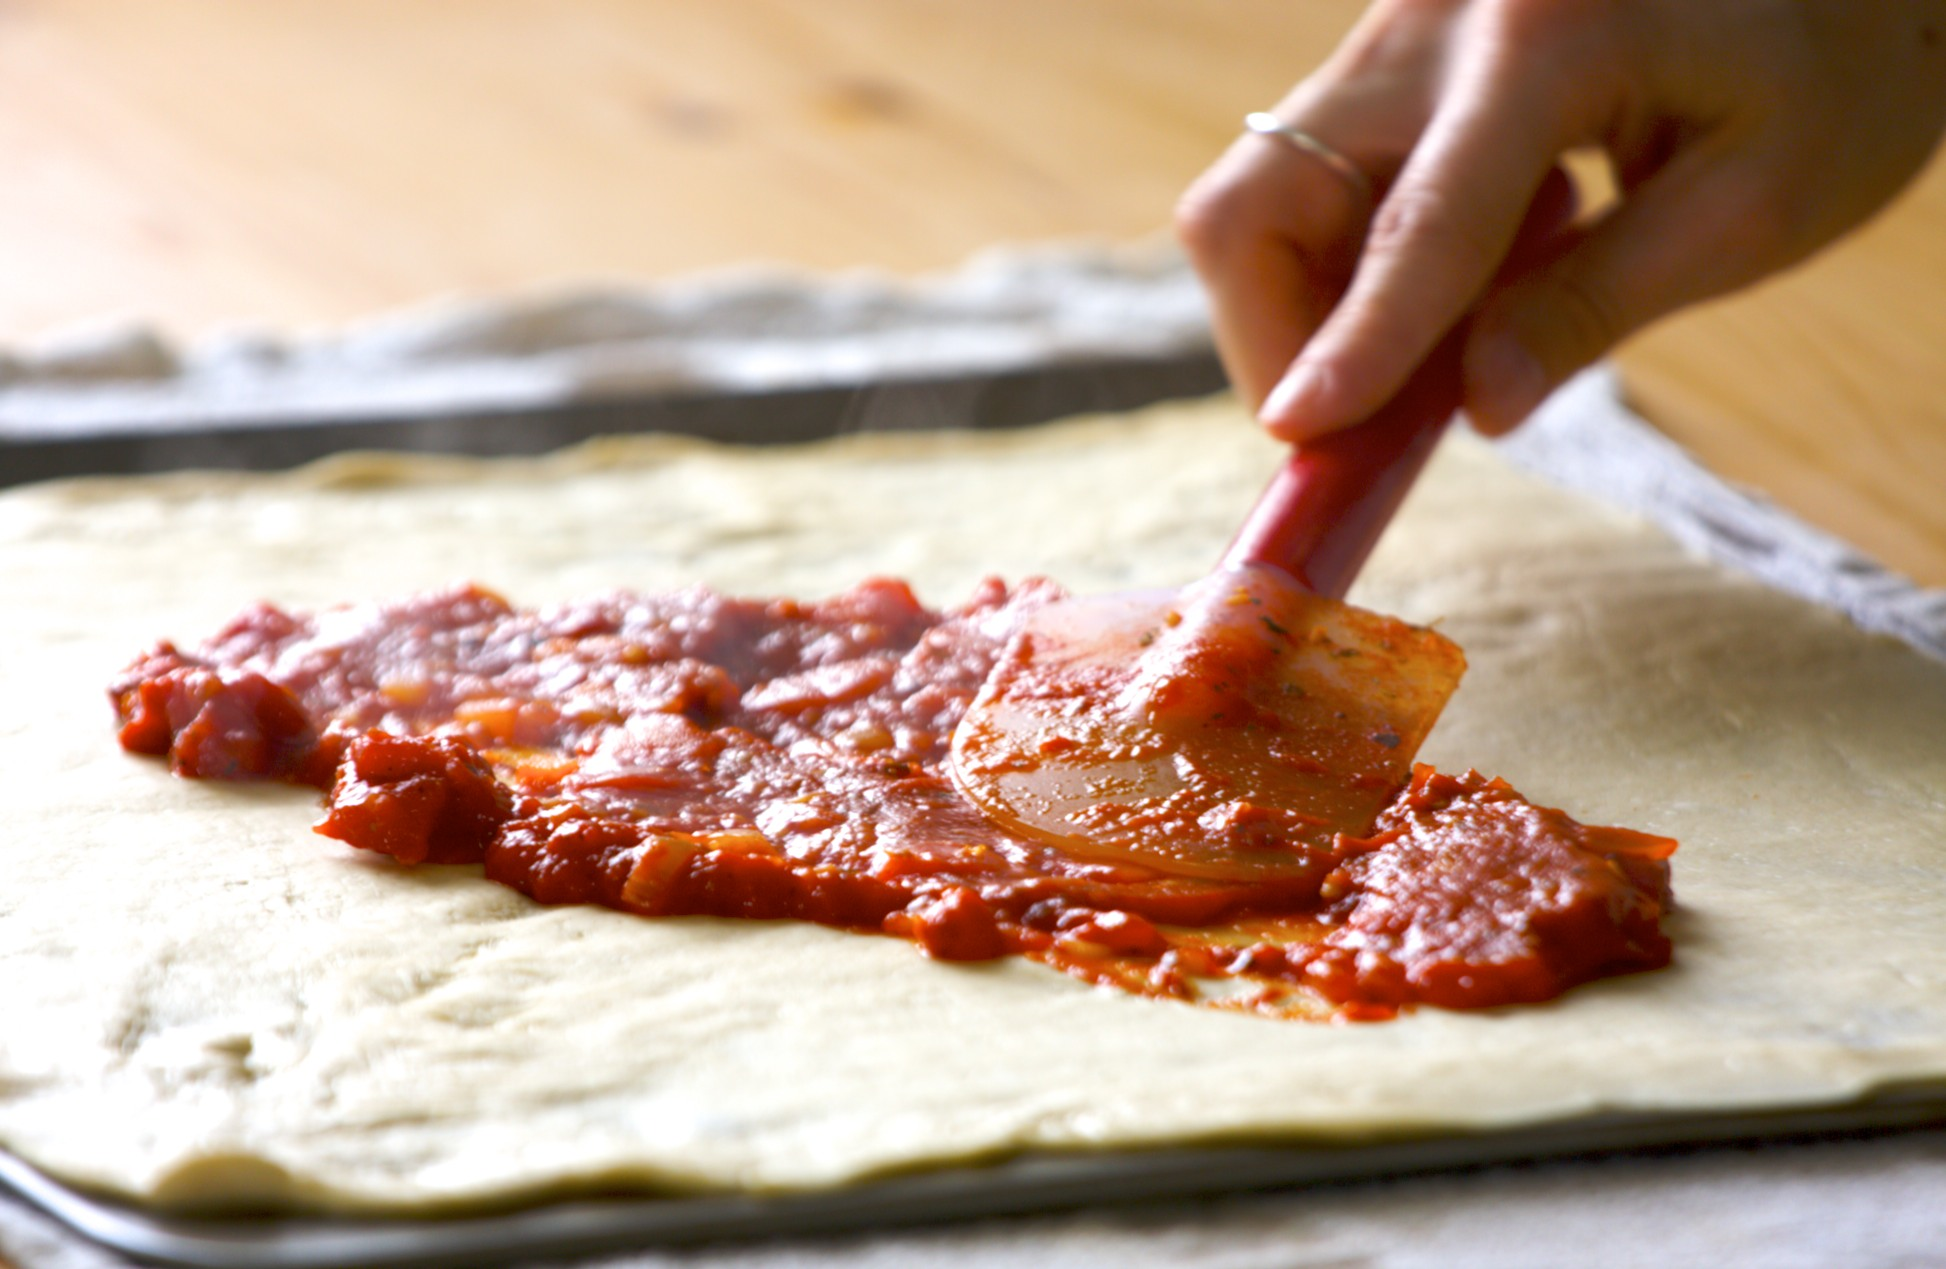 Thin Crust Pizza Dough and a Simple Sauce